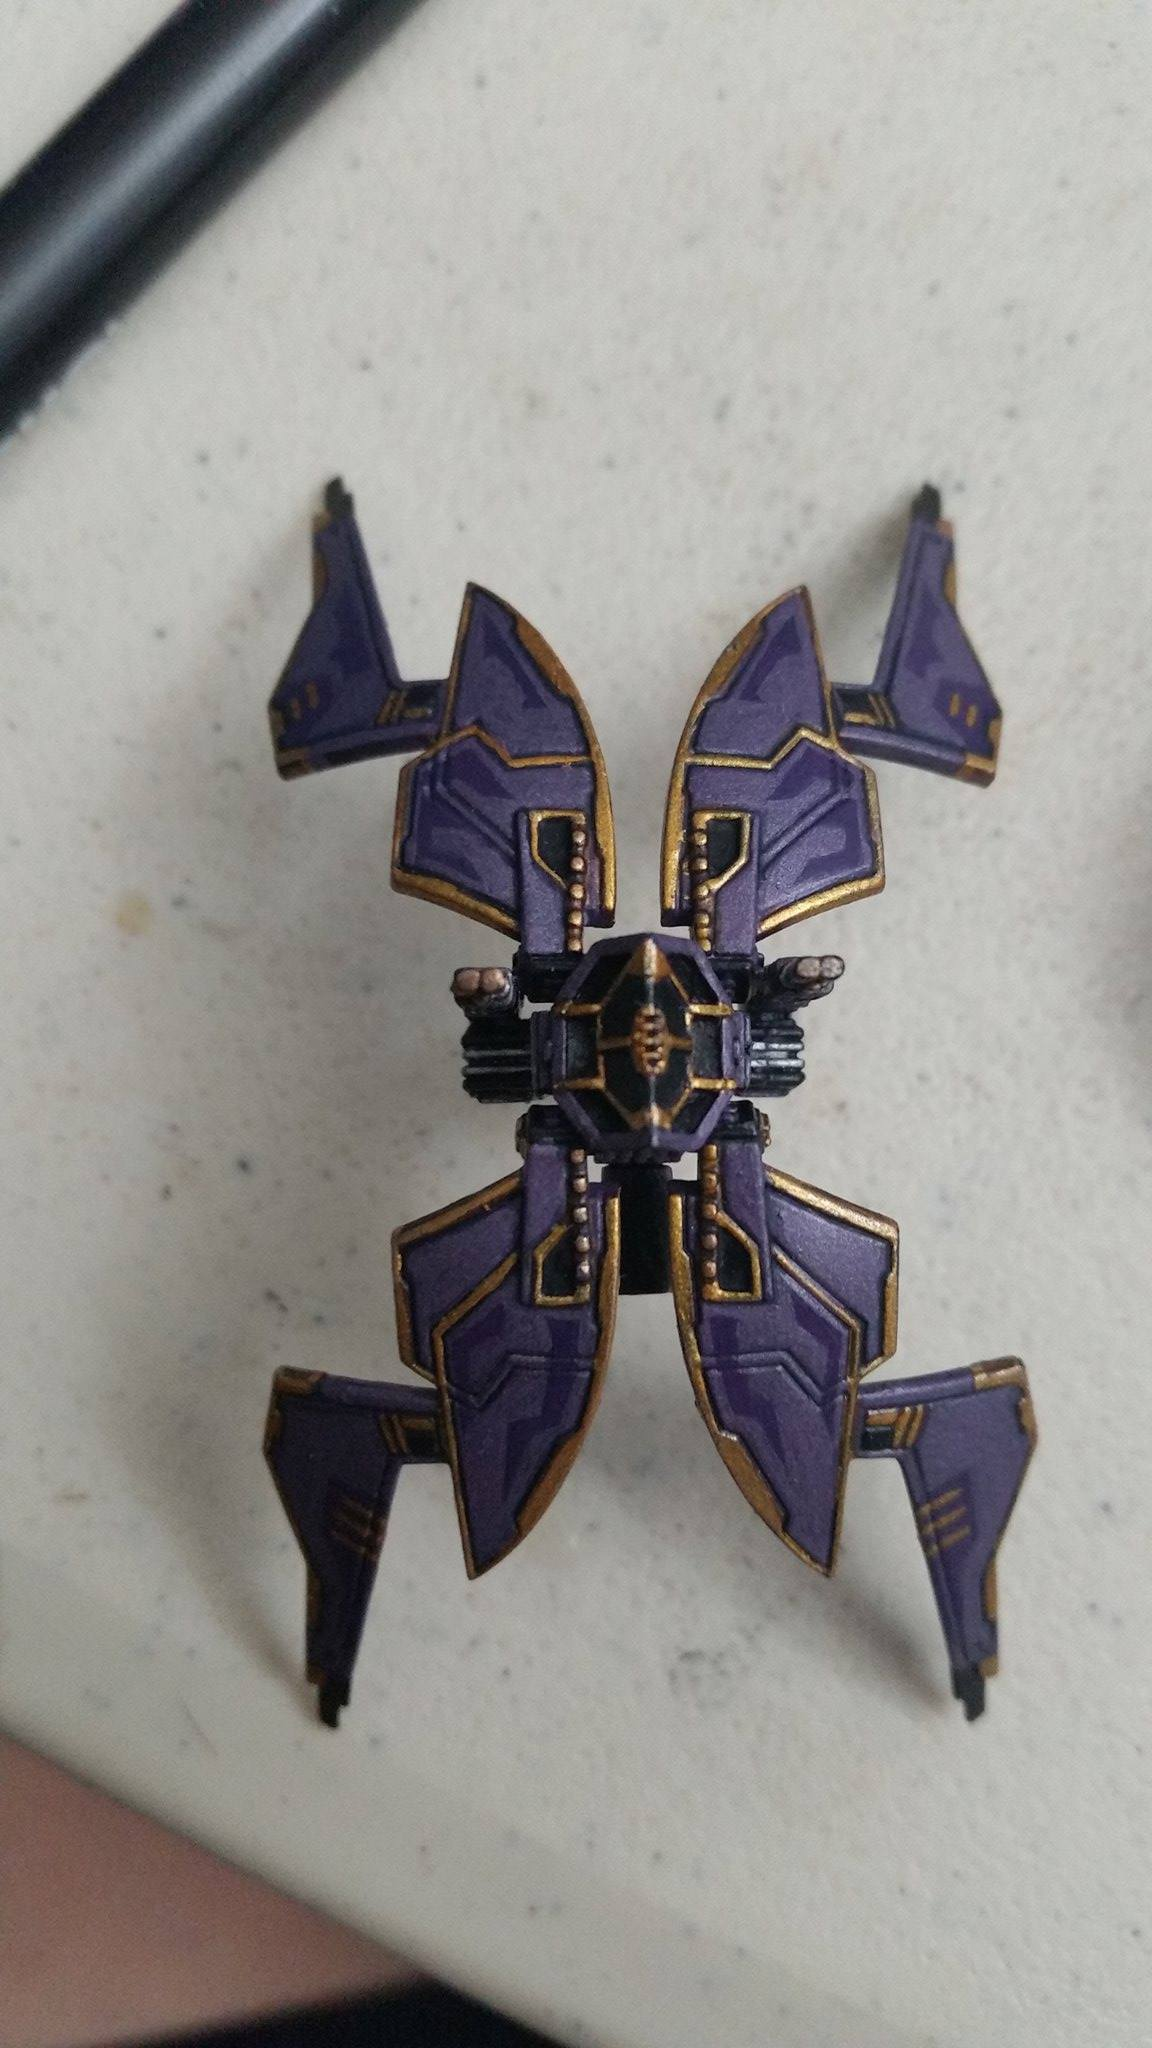 Starviper Repaint Purple and Gold (X-wing Miniatures)